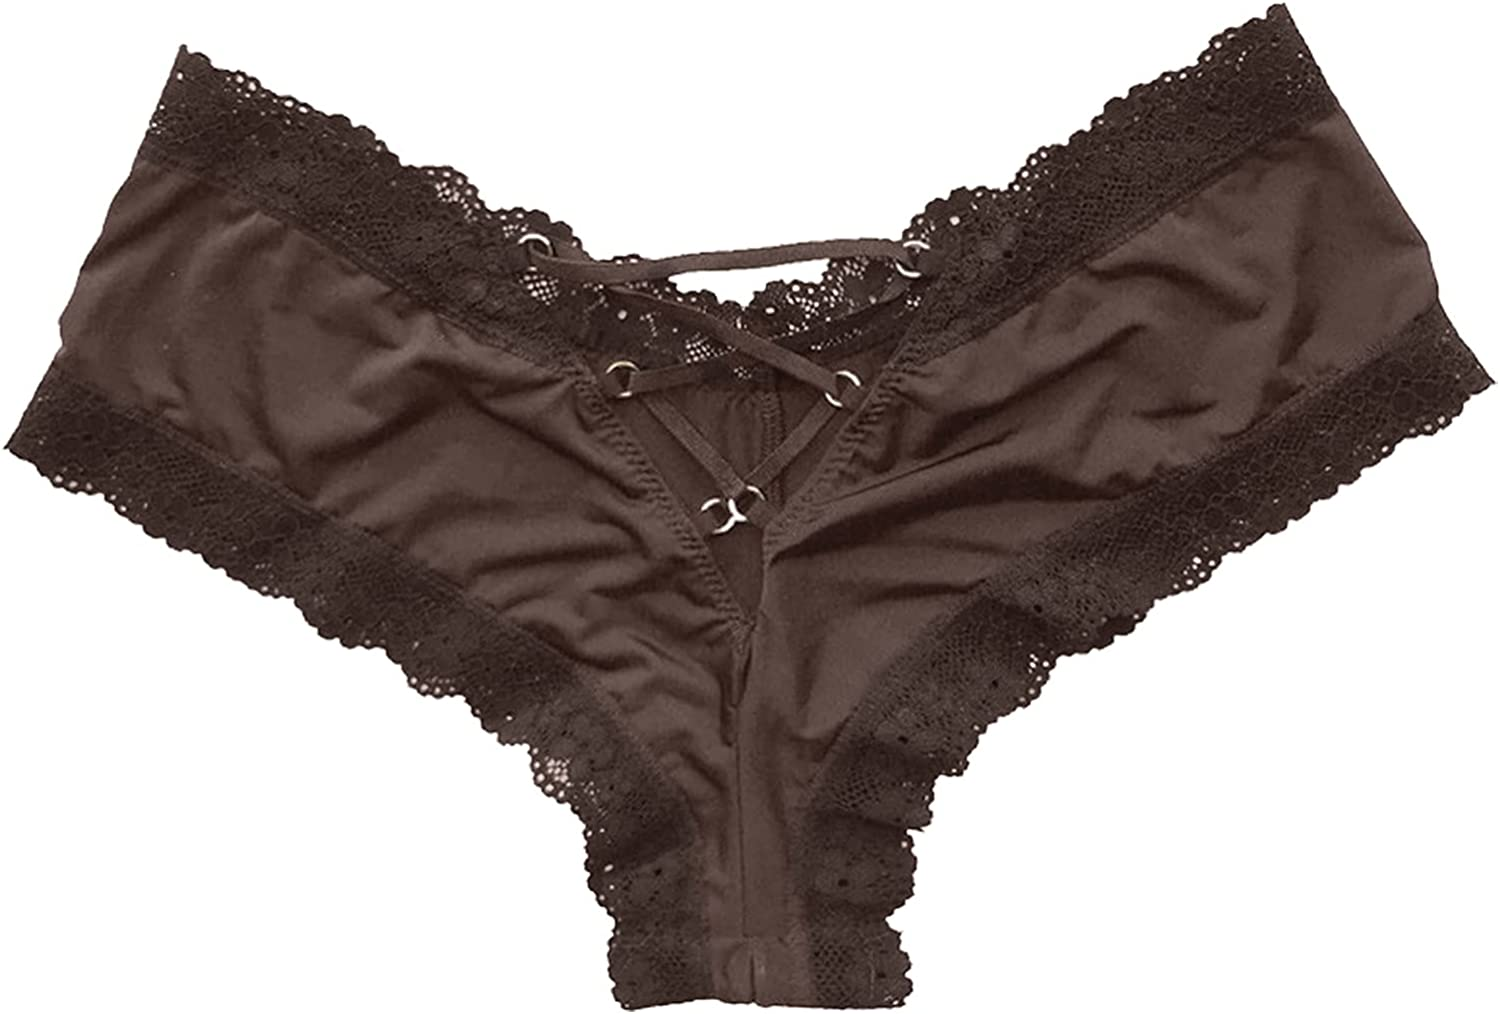 A2A Thong underwear for women No Show Breathable Cotton Thongs Underwear Seamless Panties Cross Tie Lace Underpants